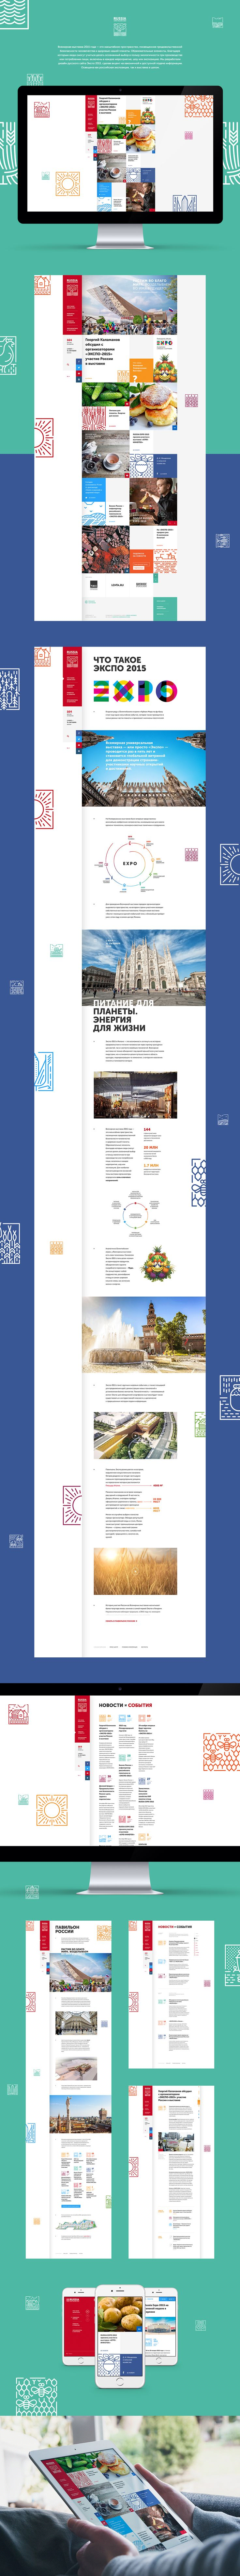 Russia Expo Milano 2015 on Behance